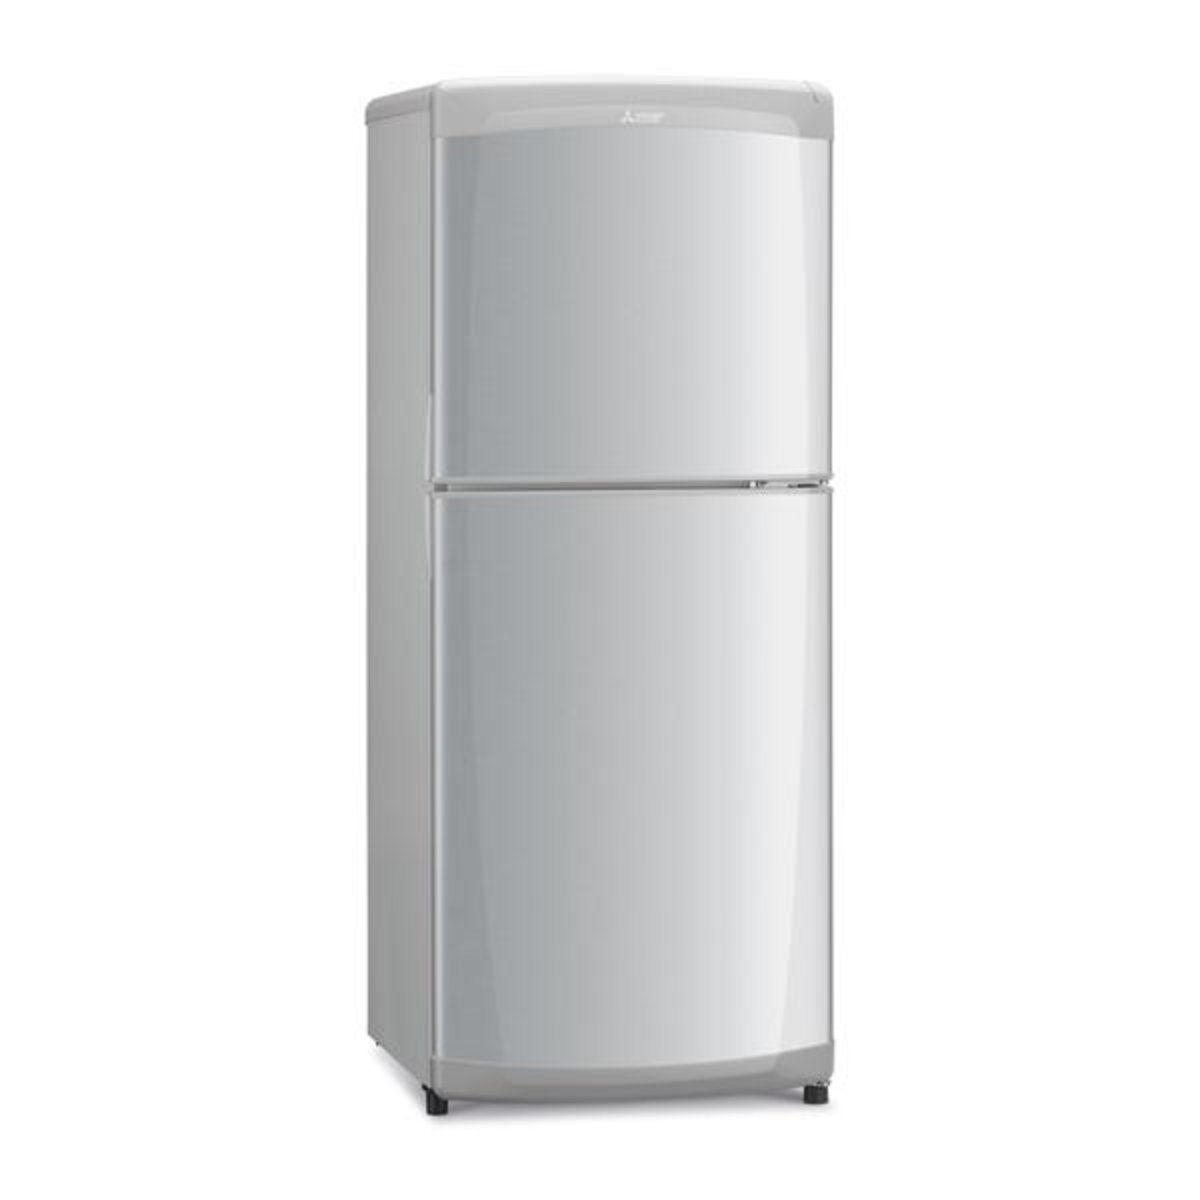 MR-F15E-SLH 2-Doors fridge